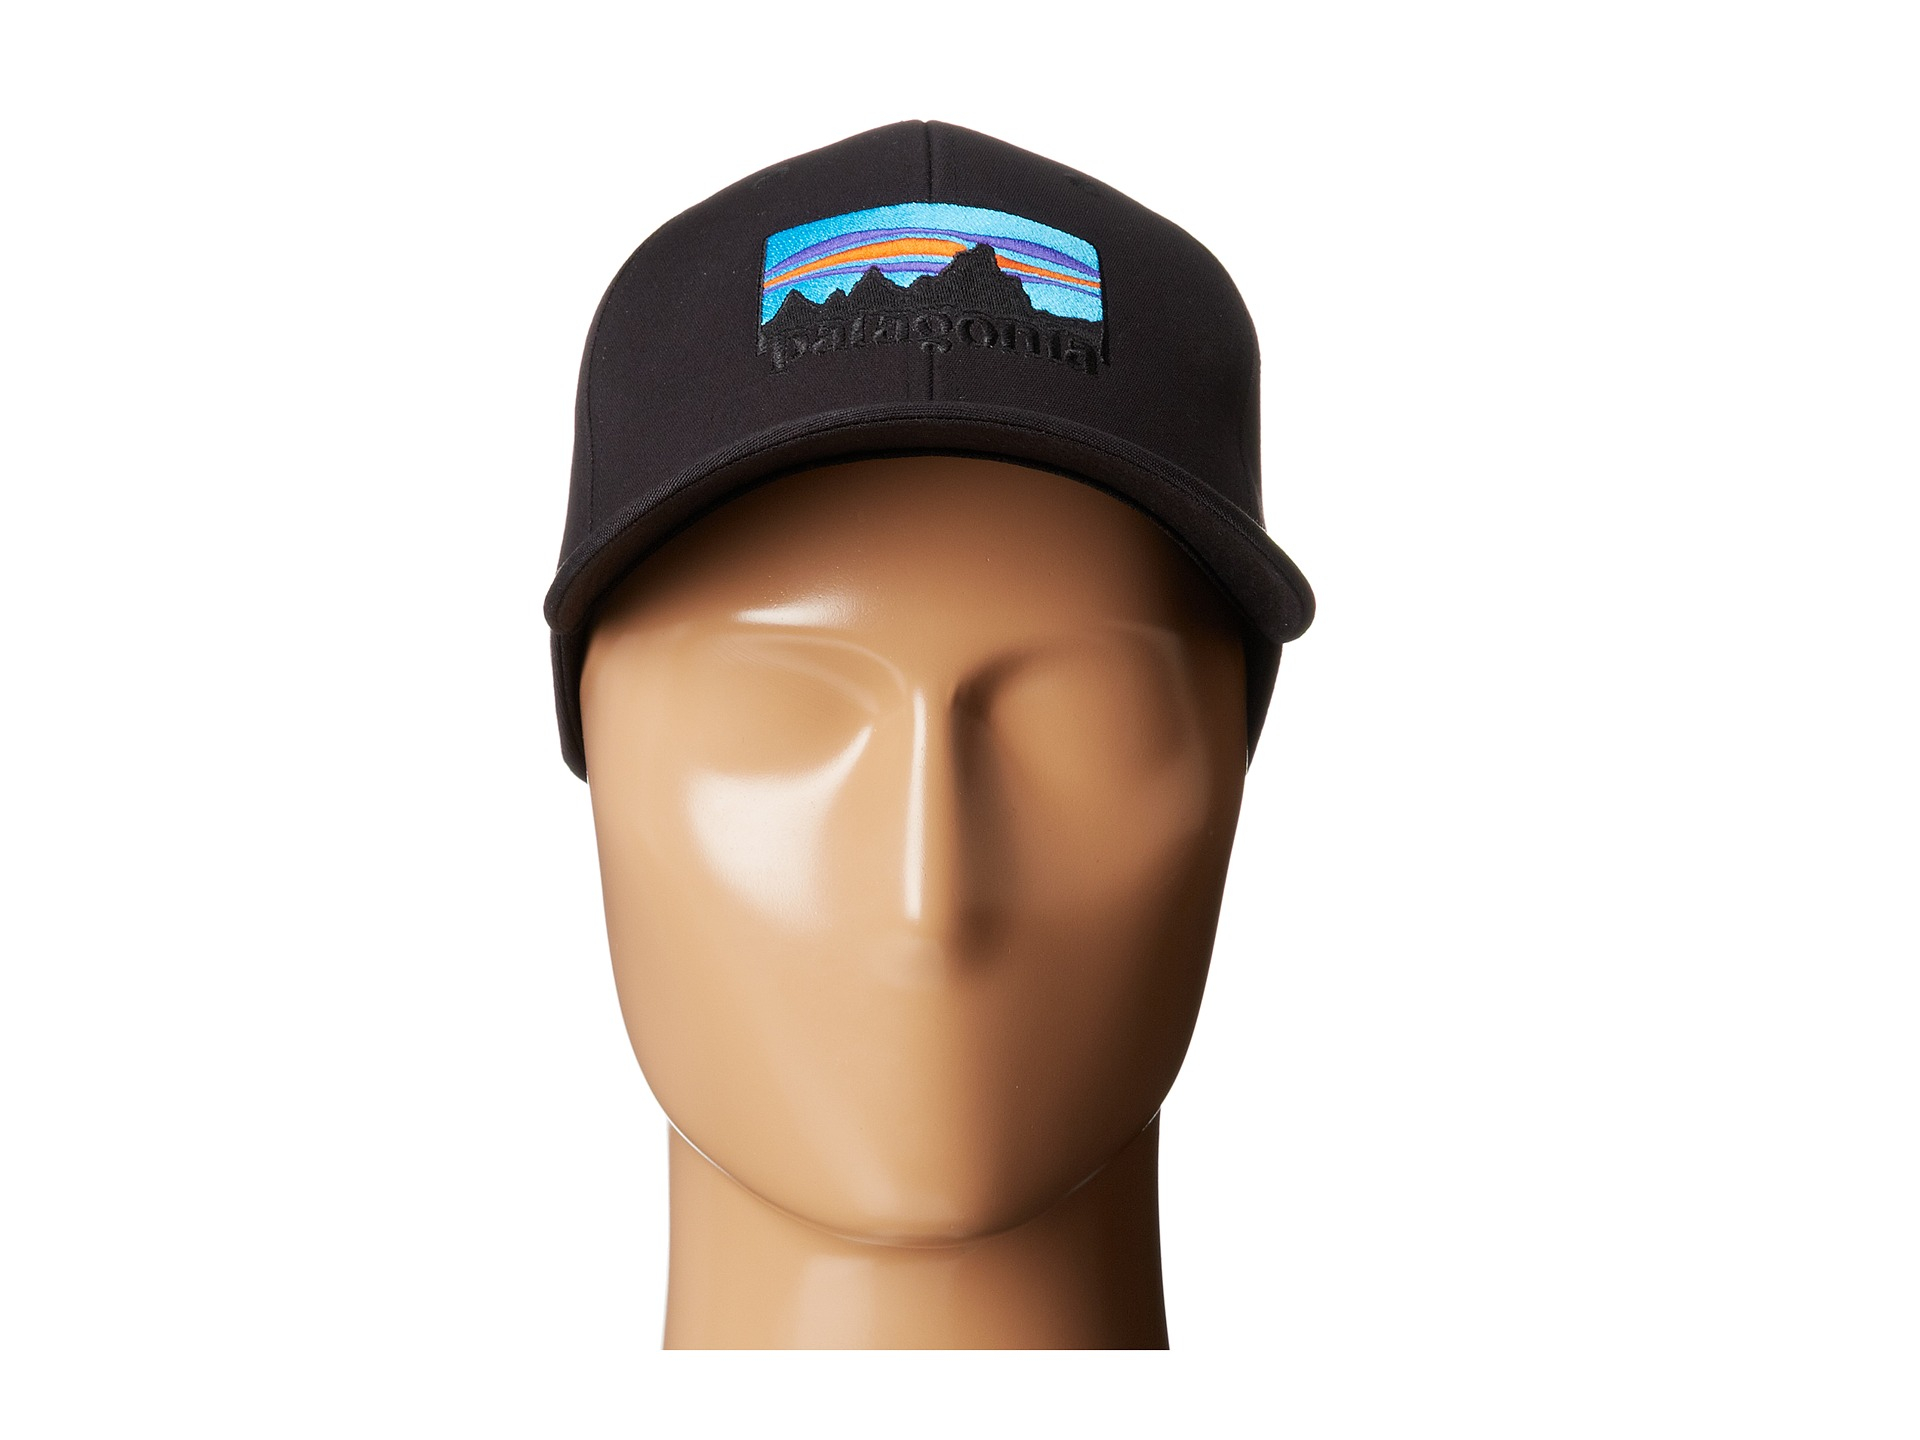 Lyst - Patagonia 73 Logo Roger That Hat in Black 4a294434b2d